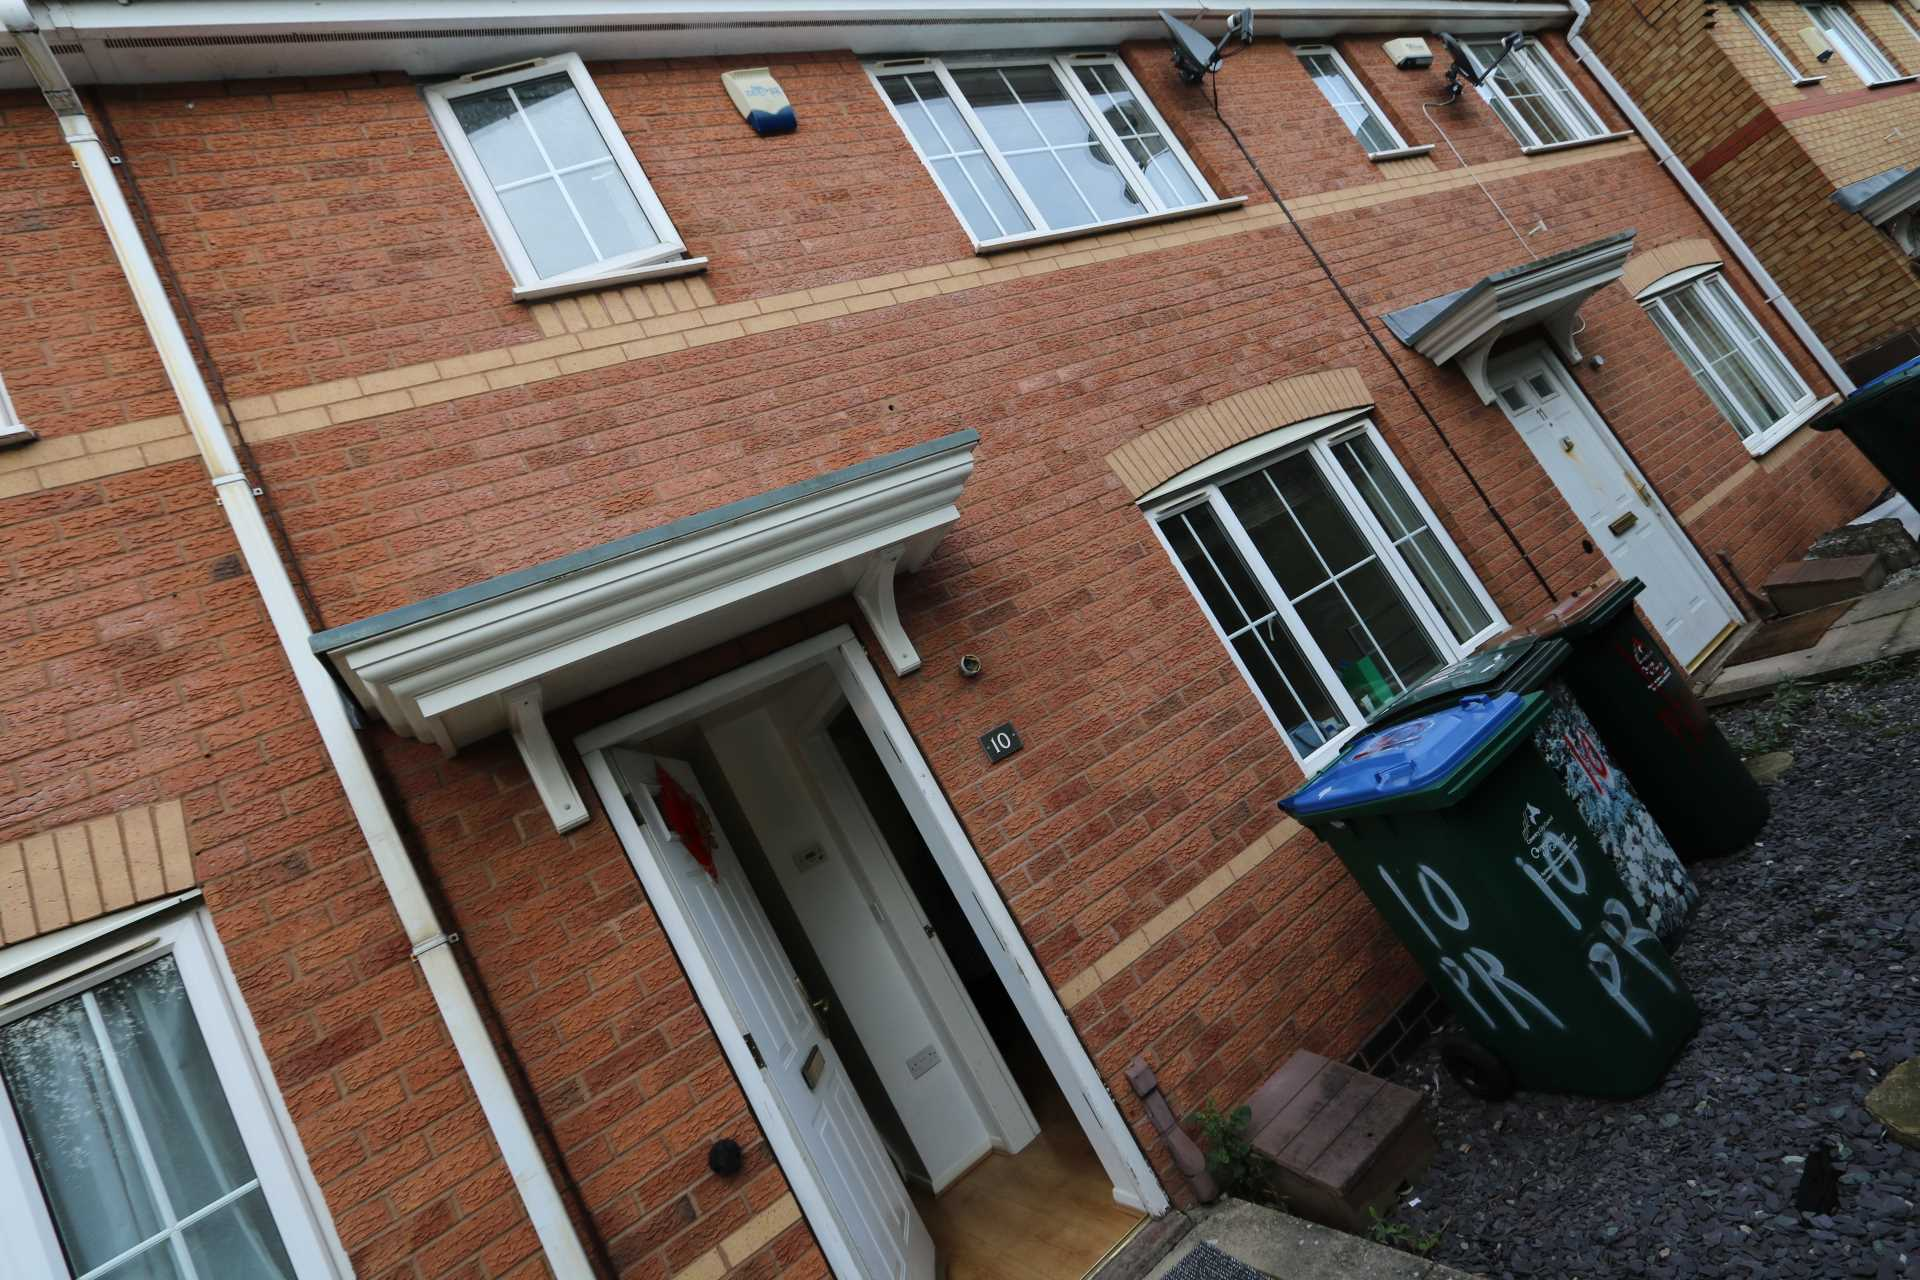 Perchfoot Close - 3 bedroom student home fully furnished, WIFI & bills included - NO FEES, Image 3